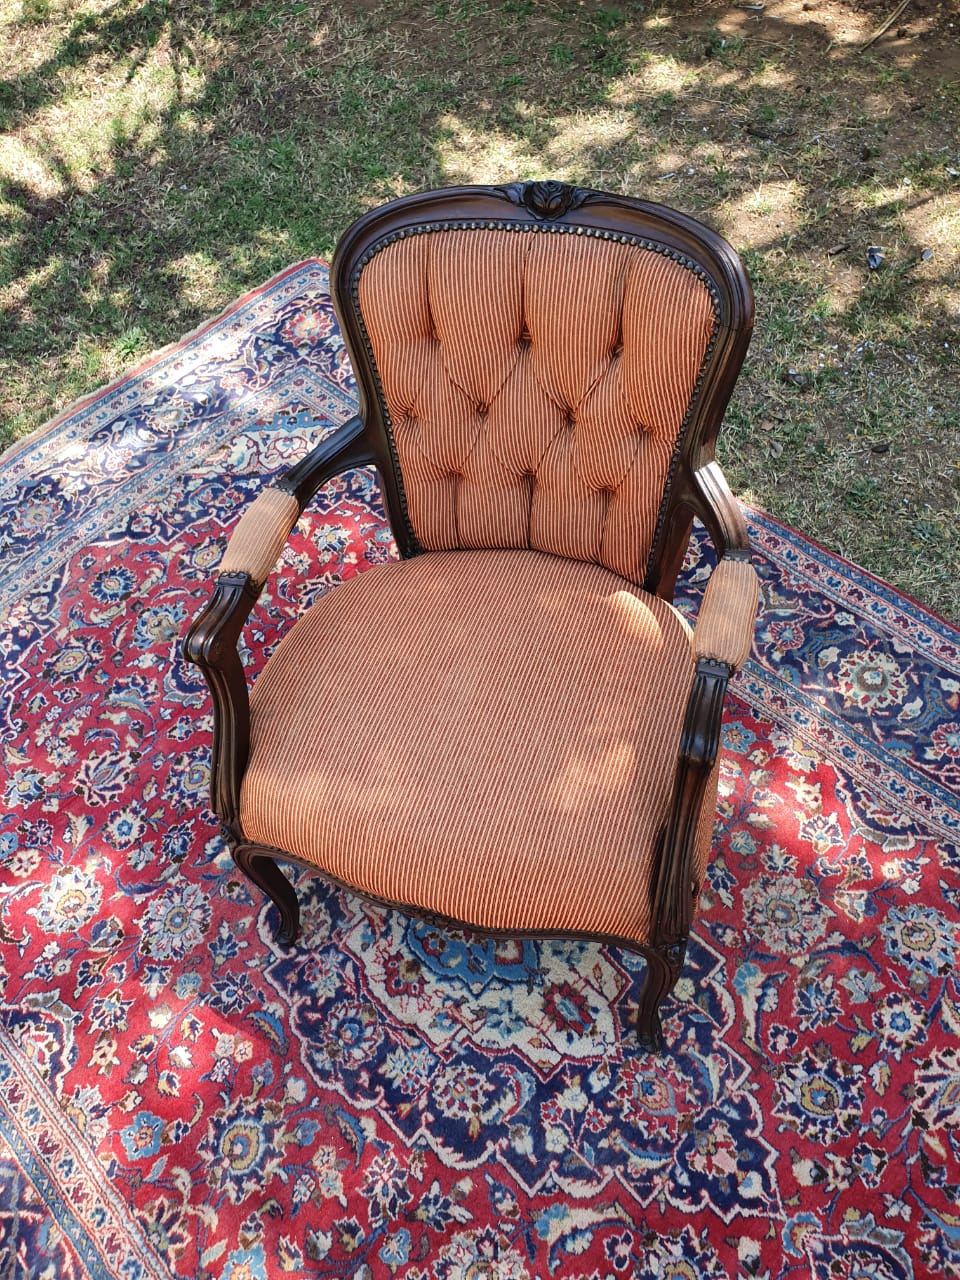 Antique Orange Chair